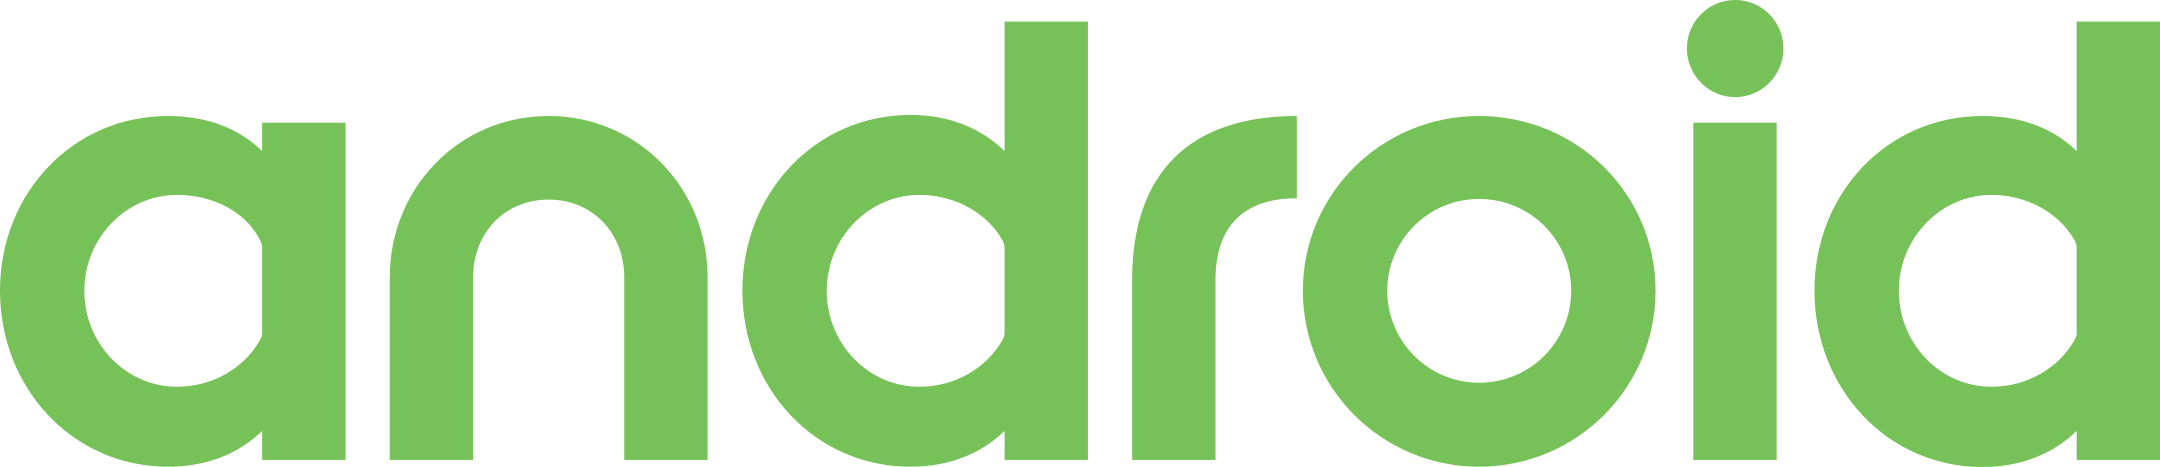 android logo 2 1 - Android Logo